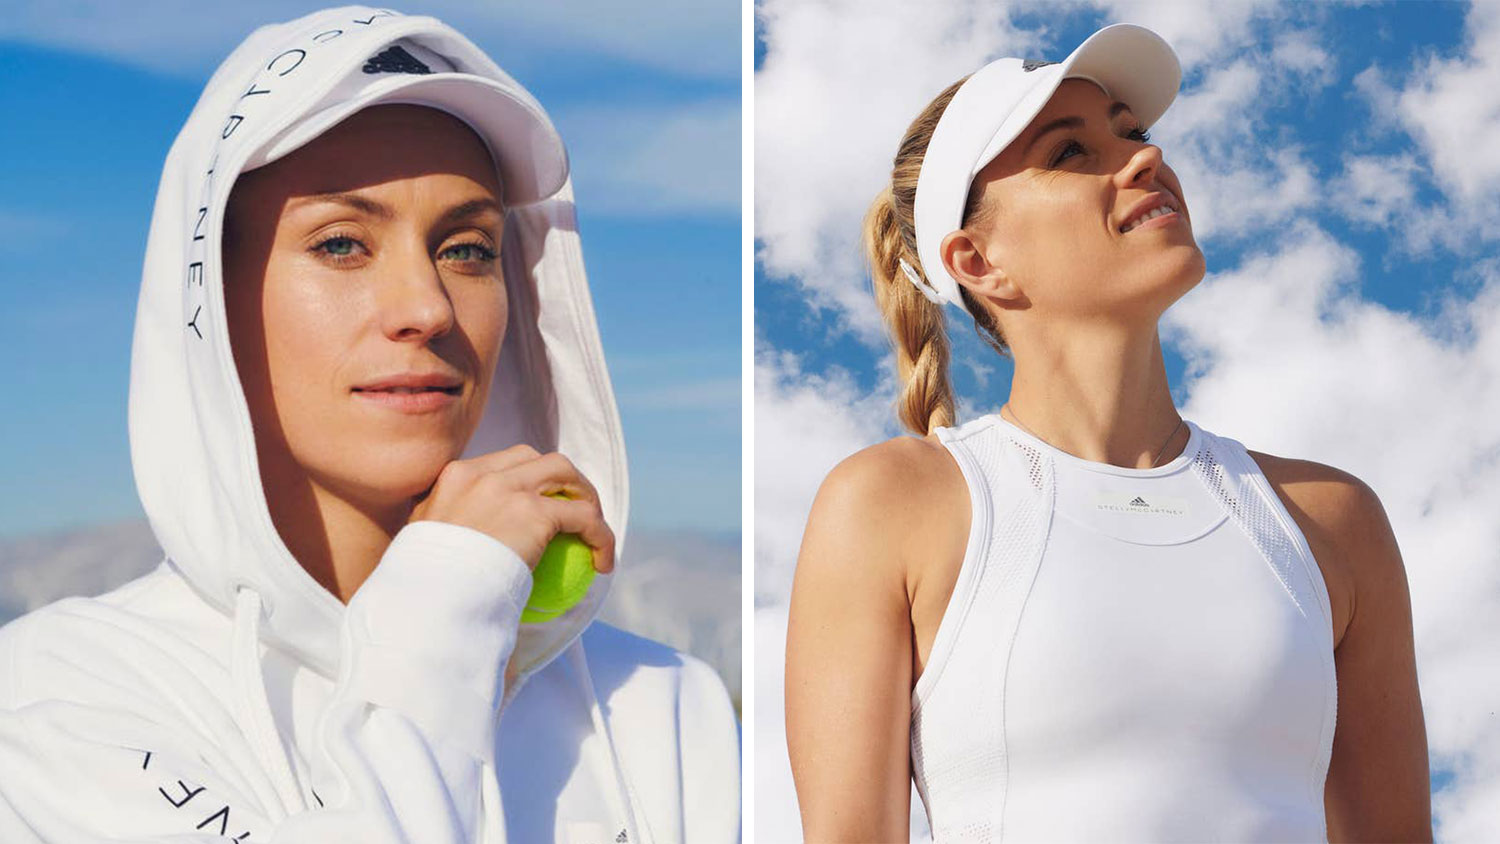 Wimbledon Players to Wear Vegan Stella McCartney Tennis Line Made From Recycled Plastic